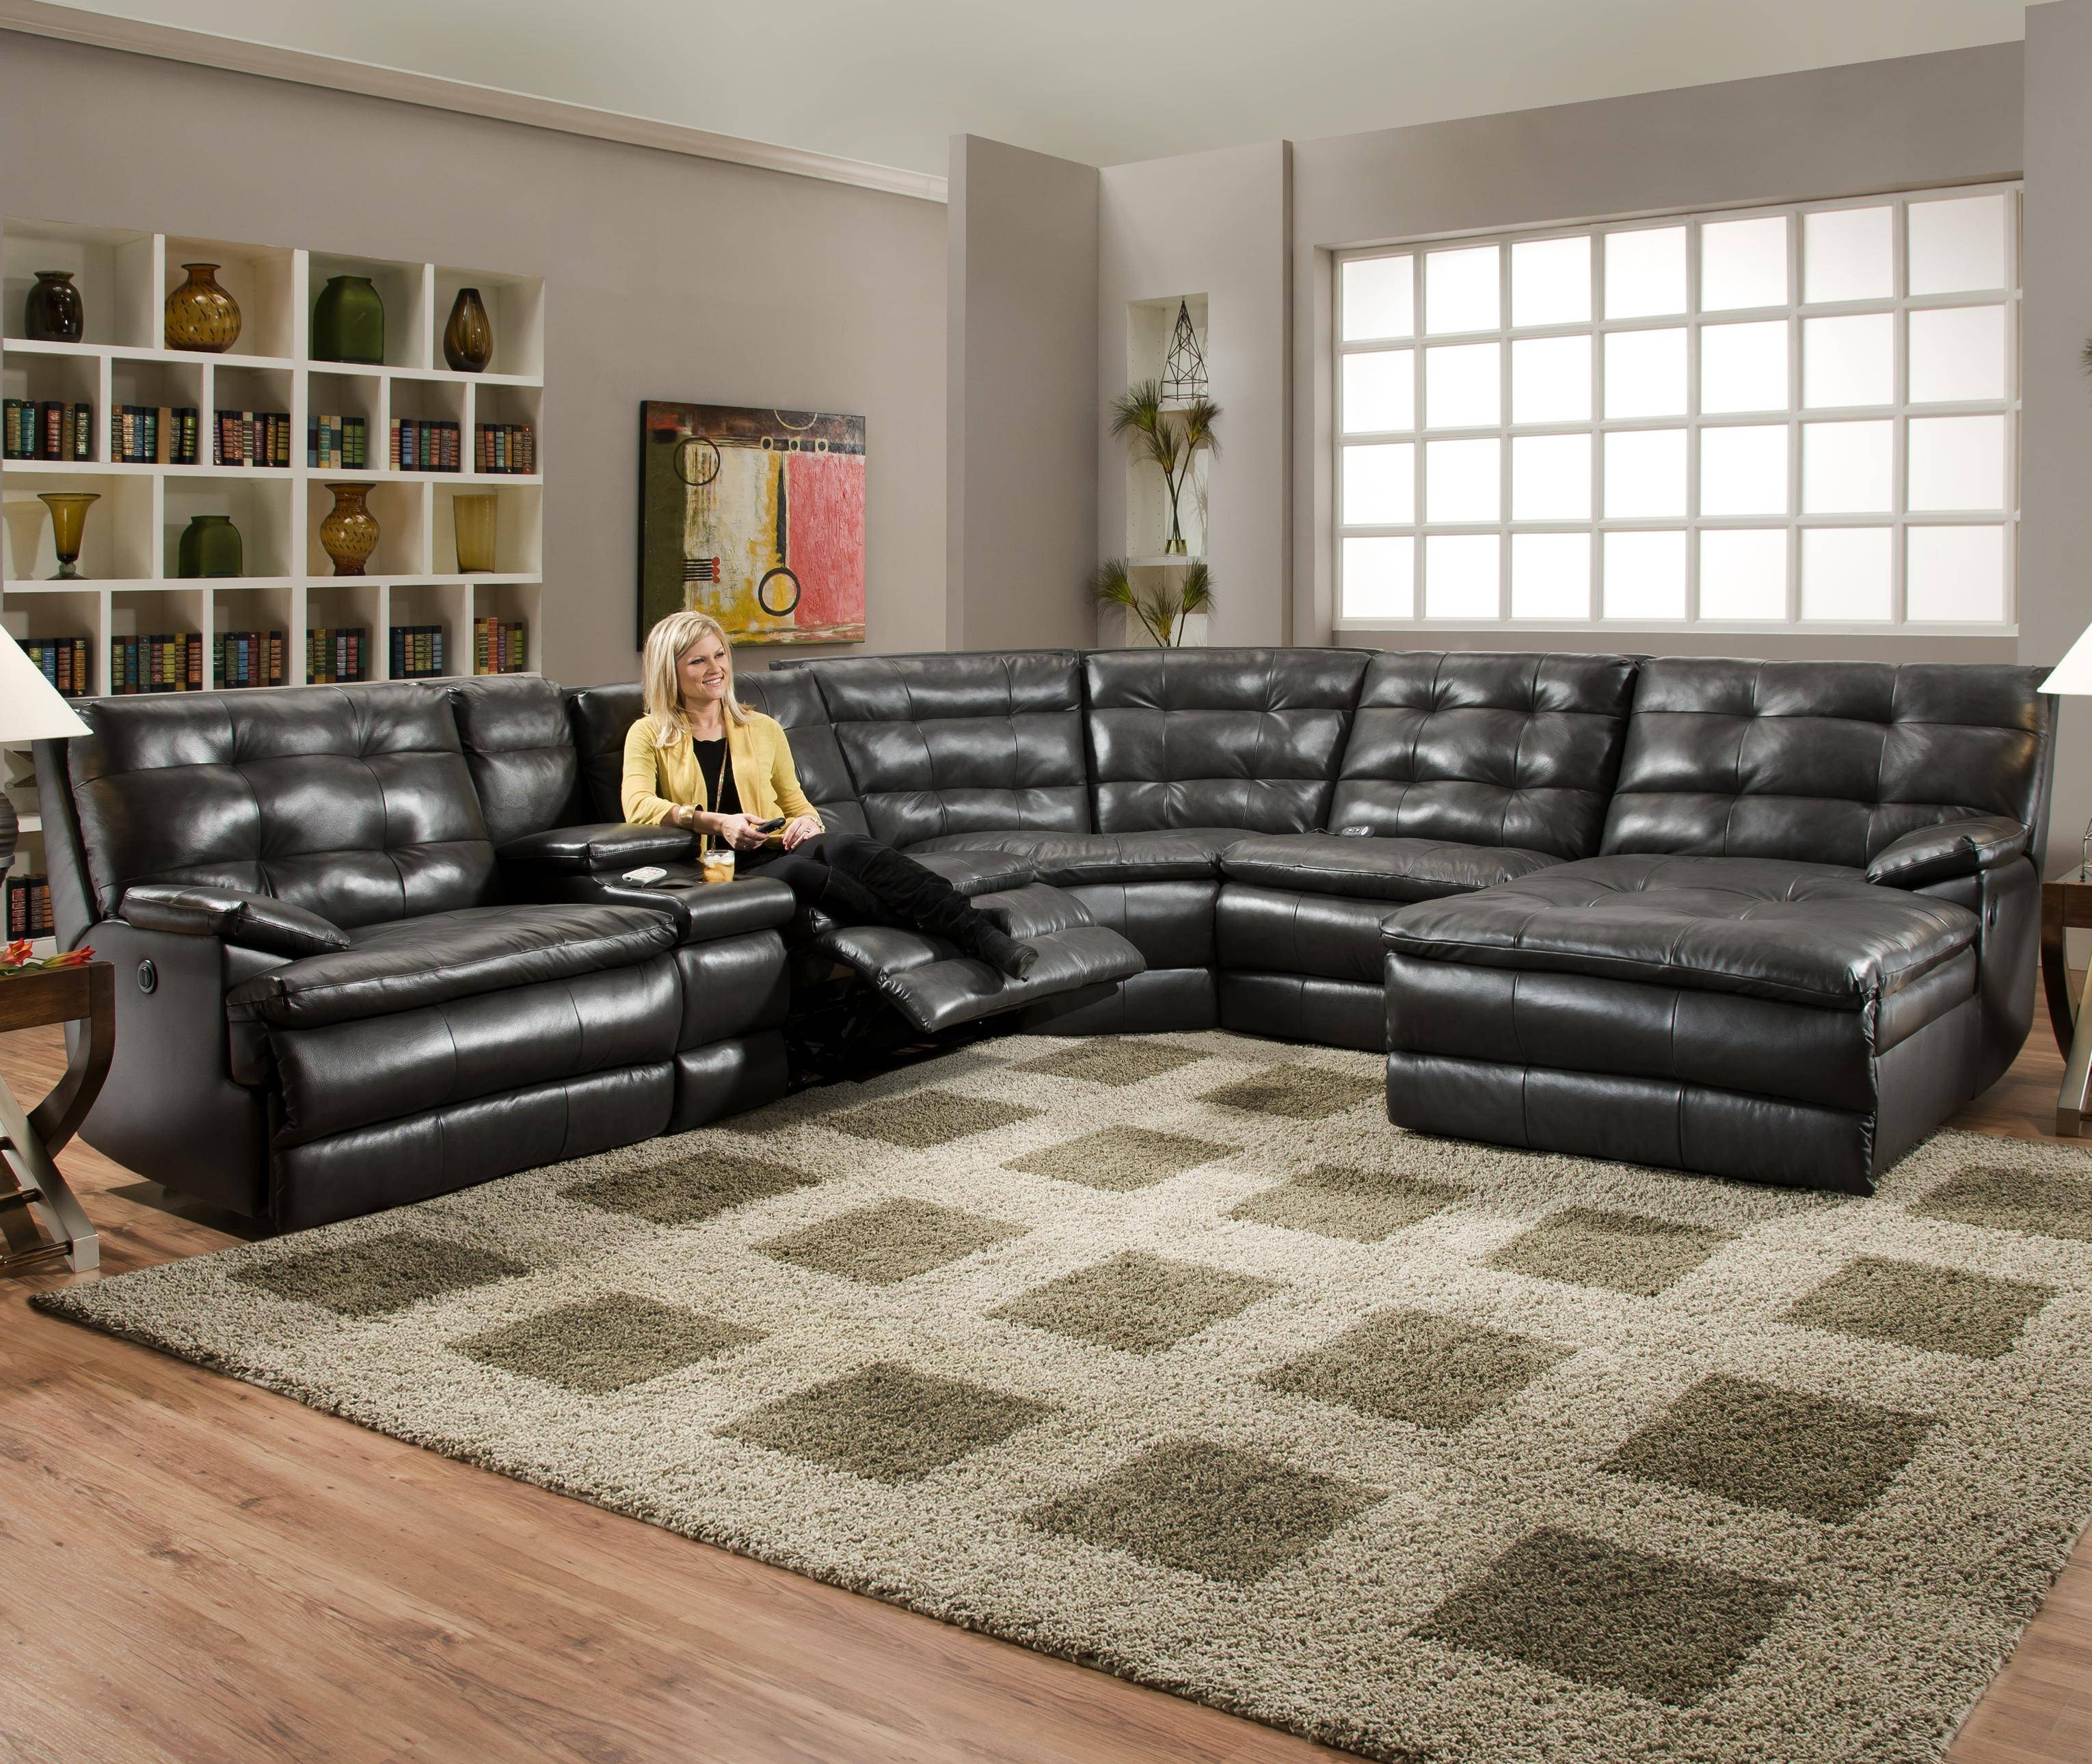 4 Ways To Design Your Living Room With An Oversized Couch Inside Extra Large Leather Sectional